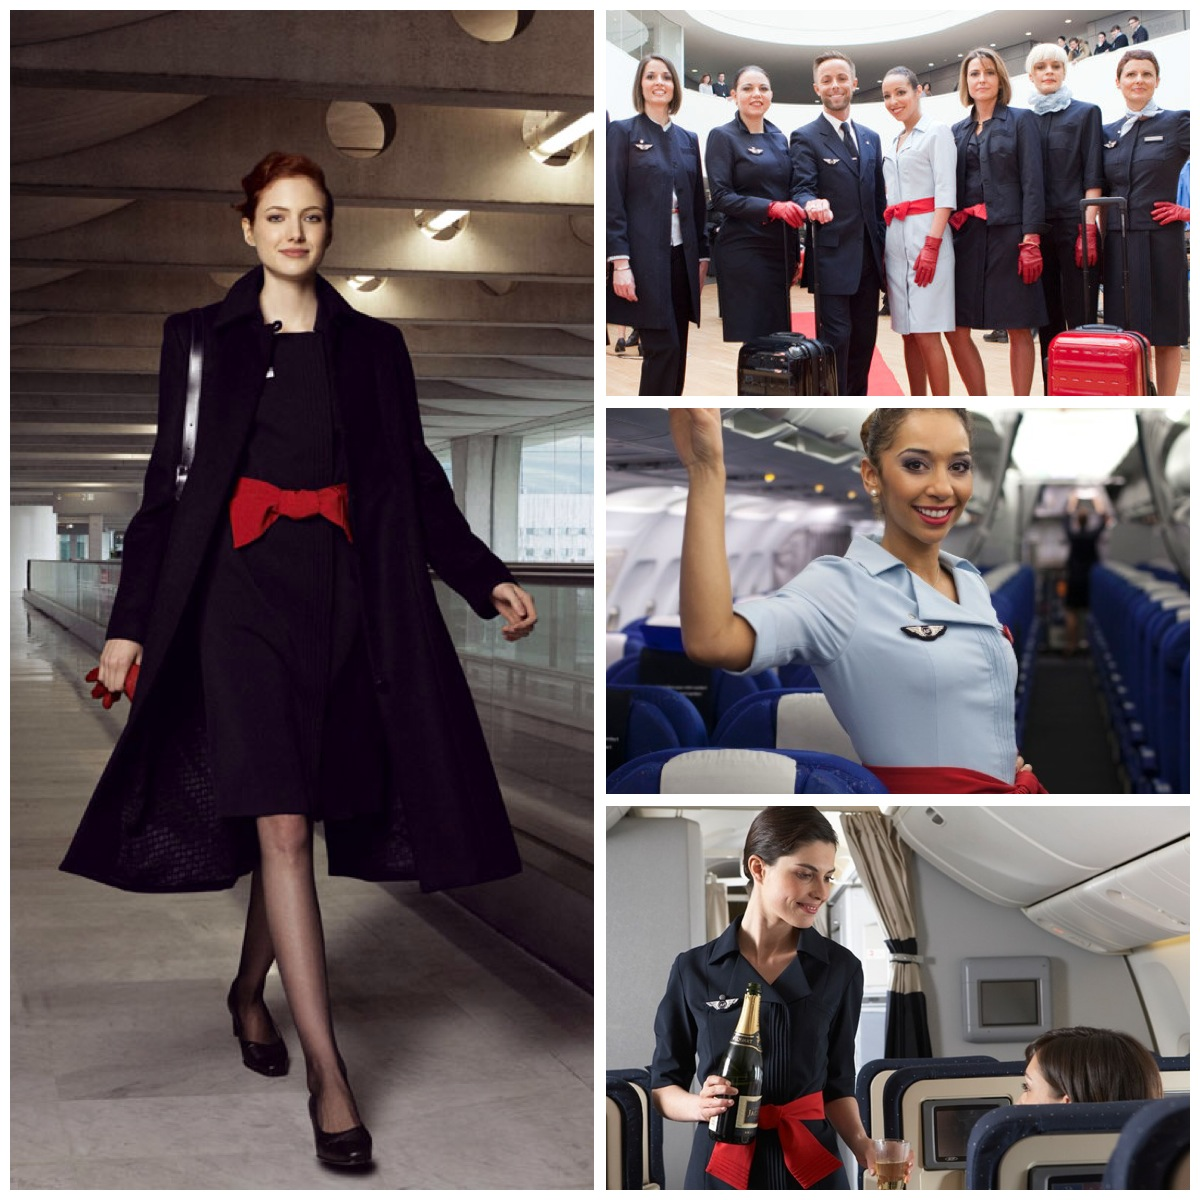 Style In The Aisles The Top Ten Cabin Crew Uniforms of  : image from confessionsofatrolleydolly.com size 1200 x 1200 jpeg 327kB